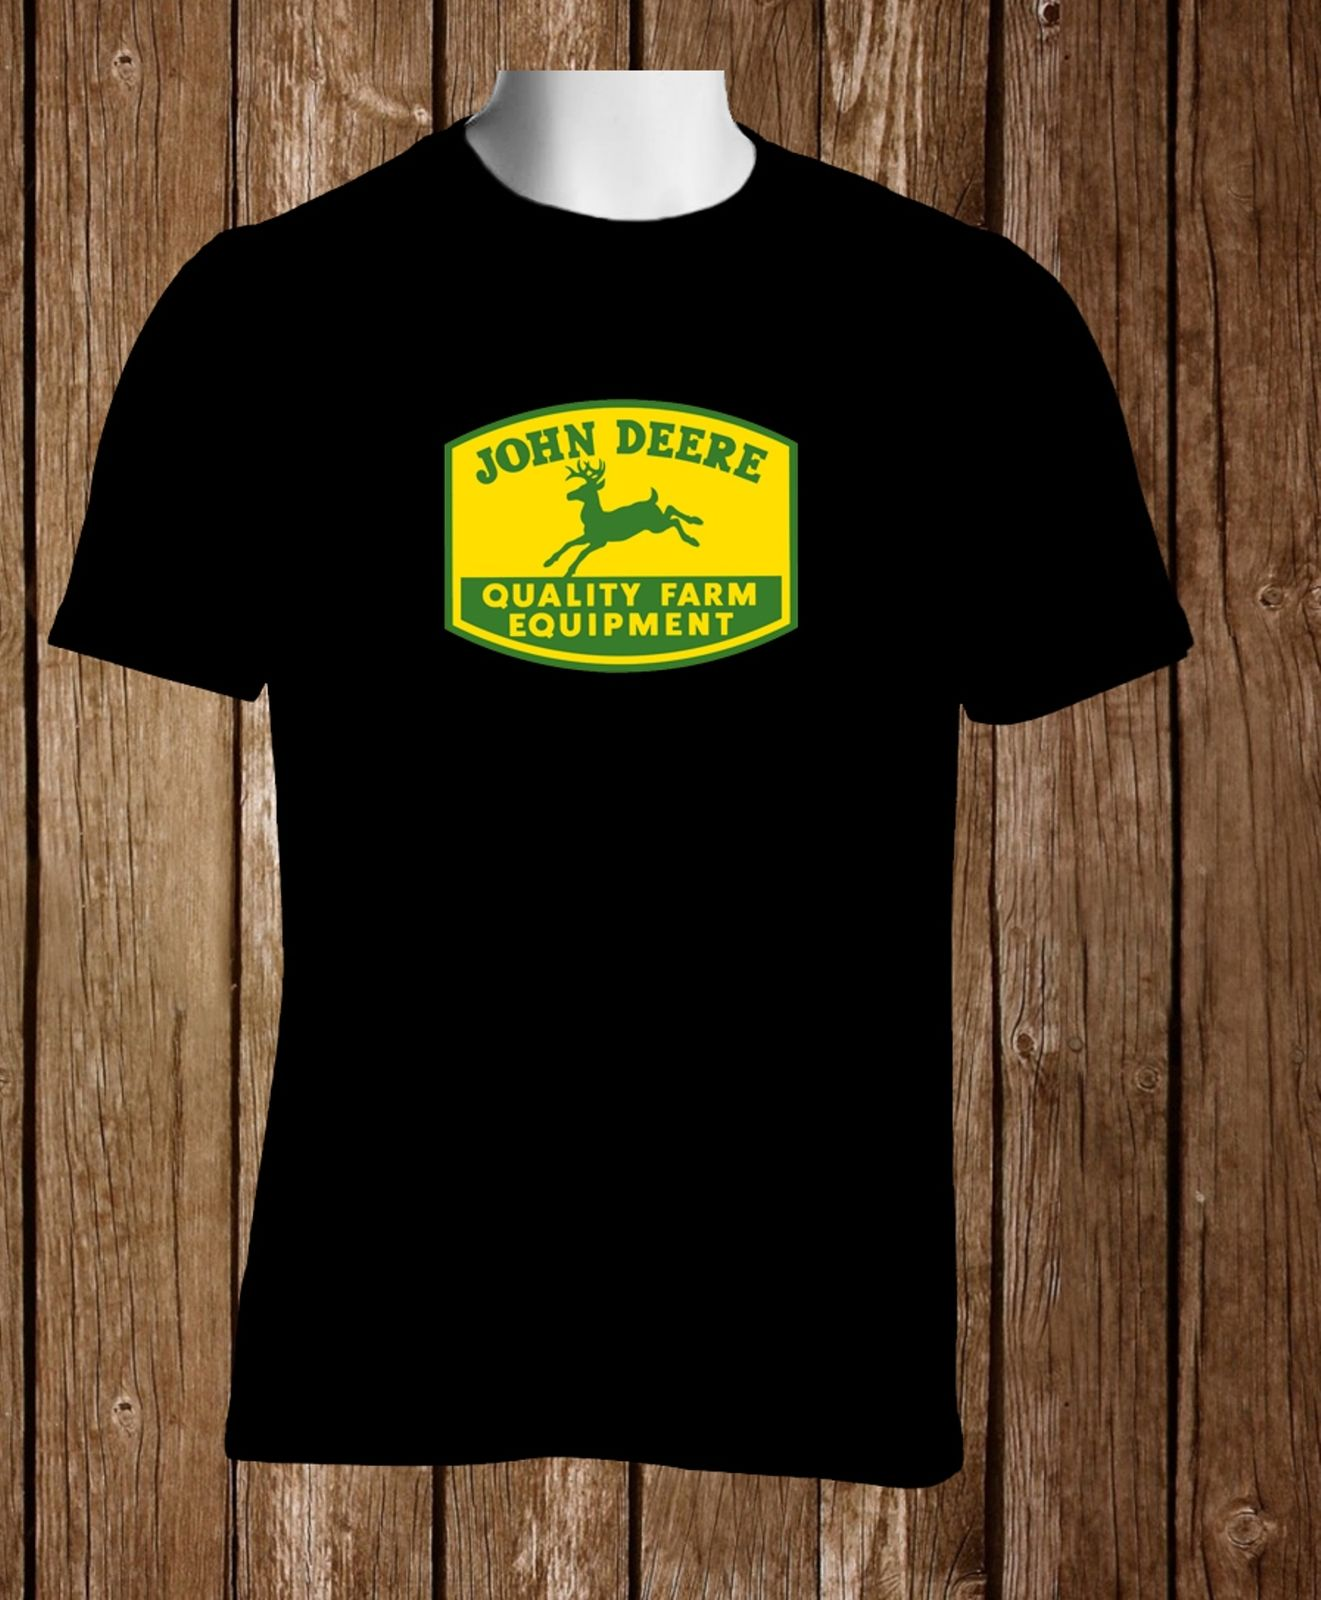 John Deere Vintage Black T-shirt Mens Size S to 3XL Short Sleeve Hip Hop Tee T Shirt top tee Men O-Neck Tee Shirt ...